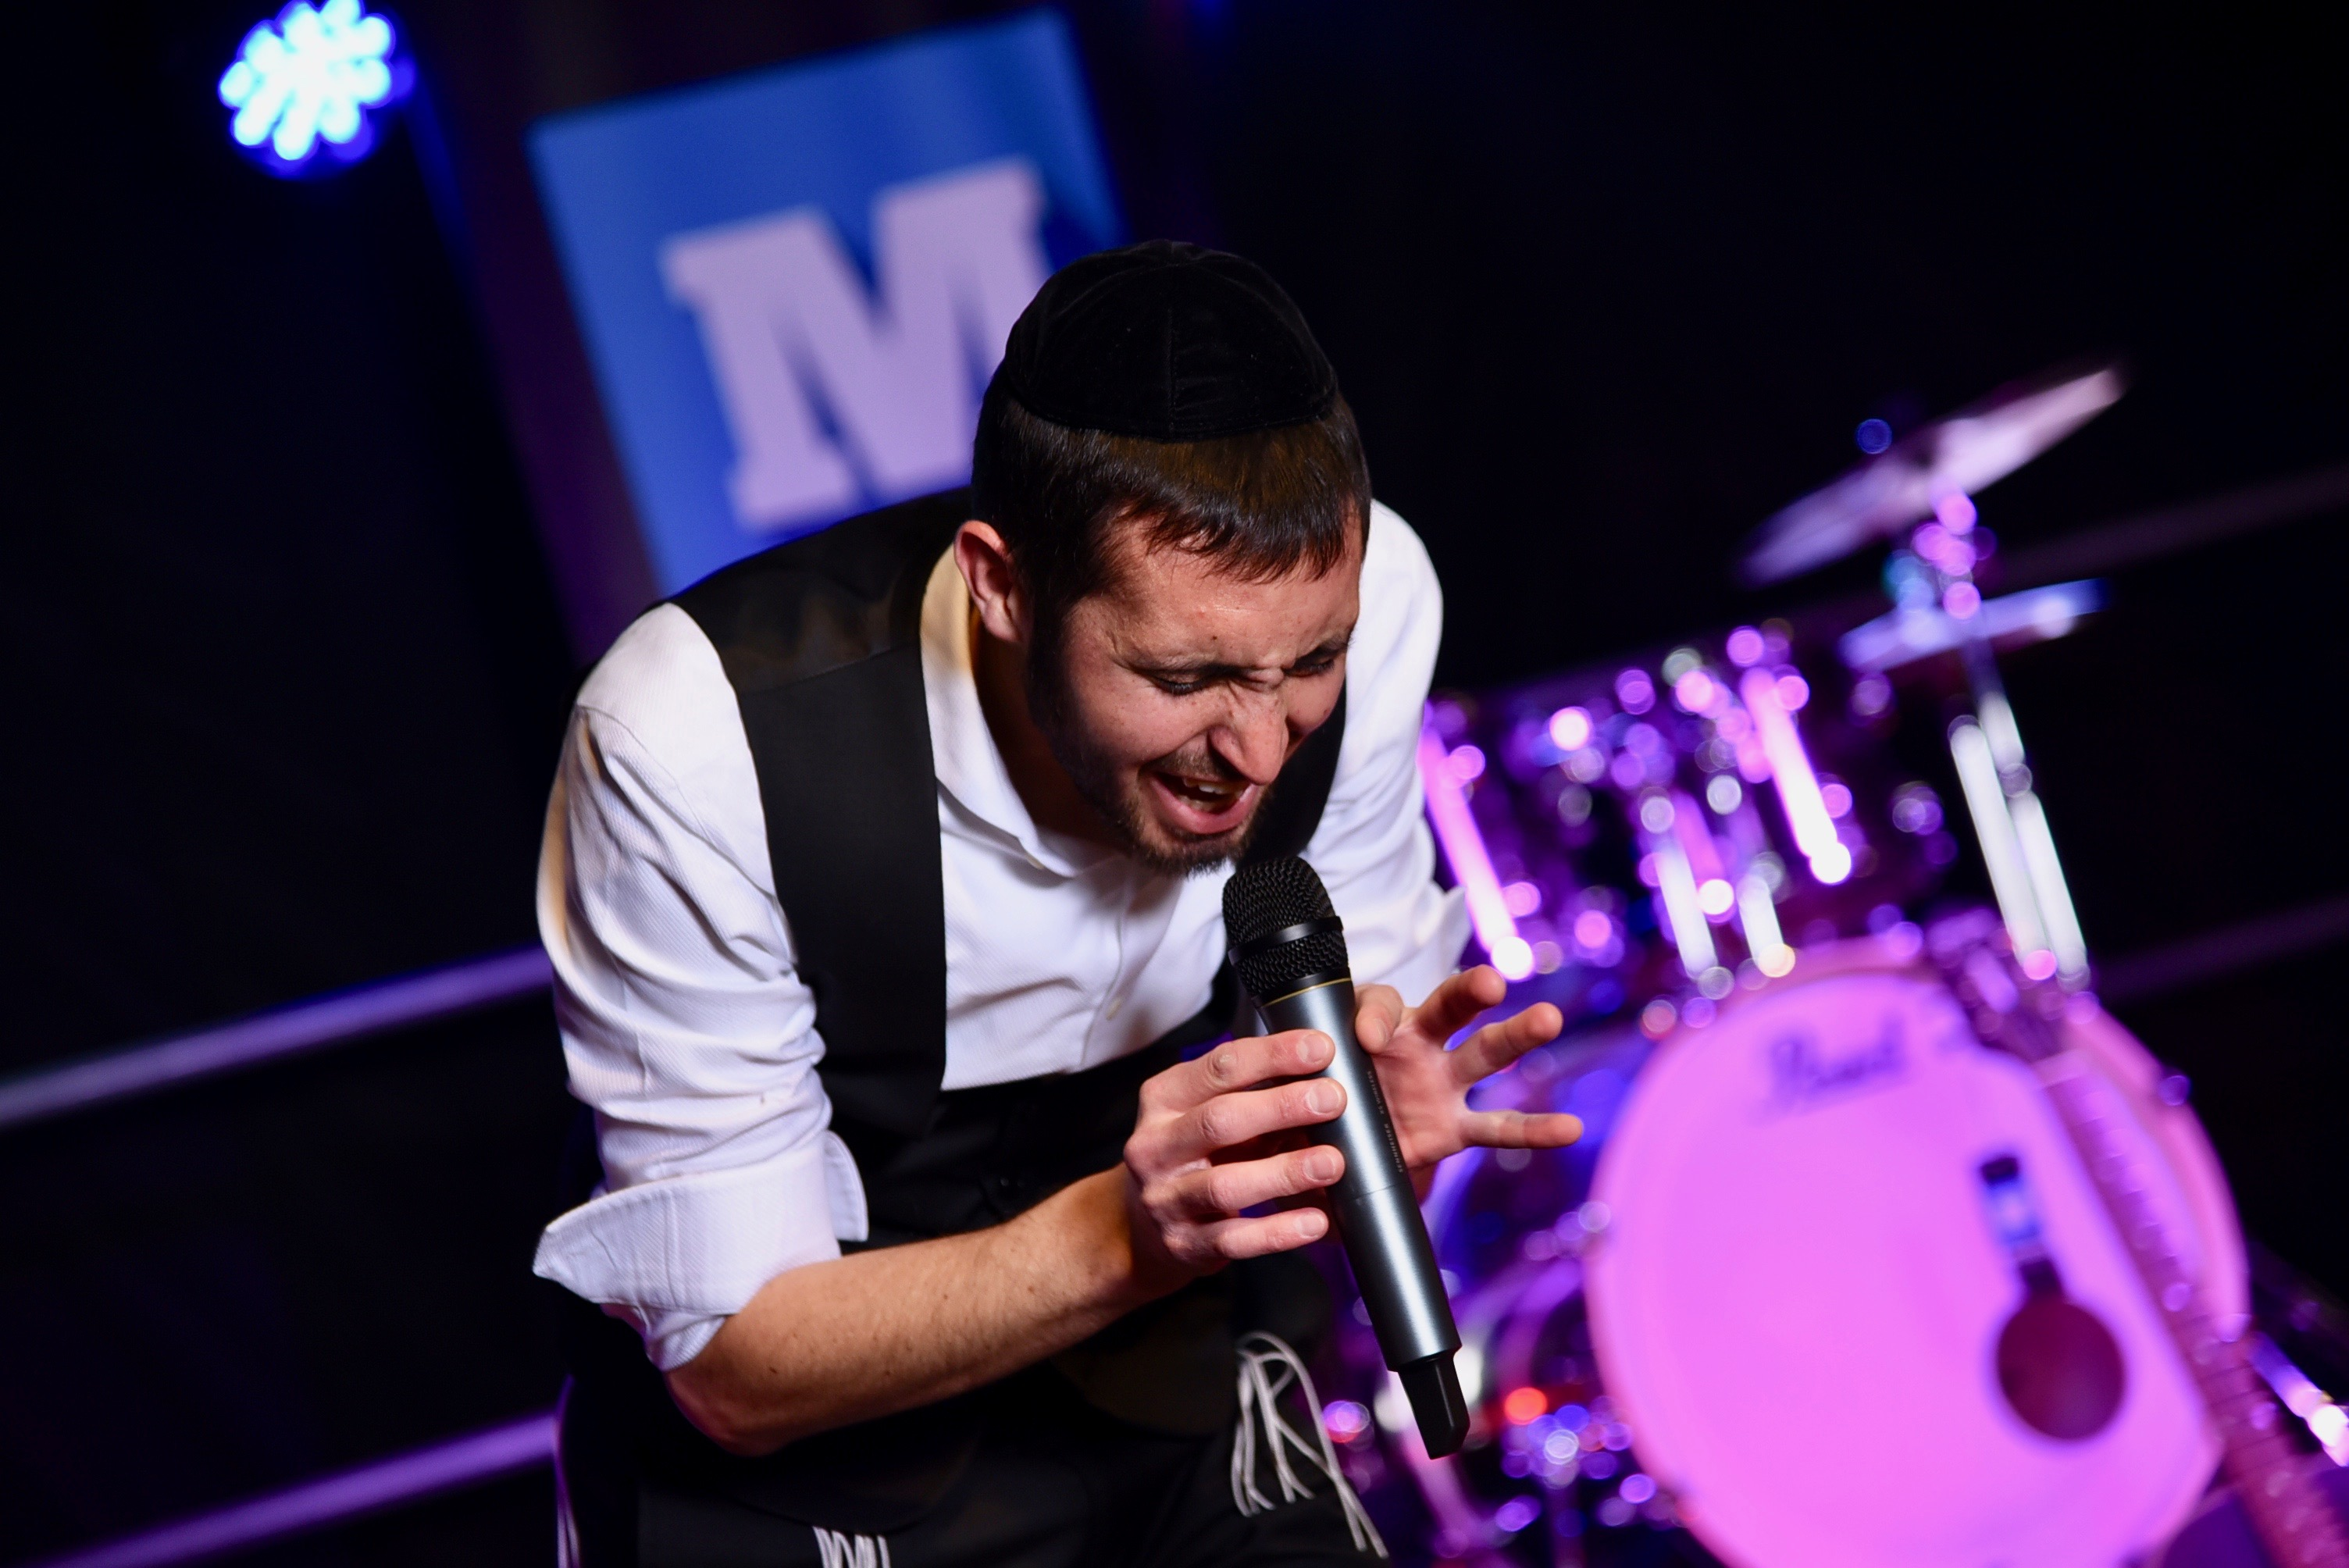 Reuven Garber performing on stage